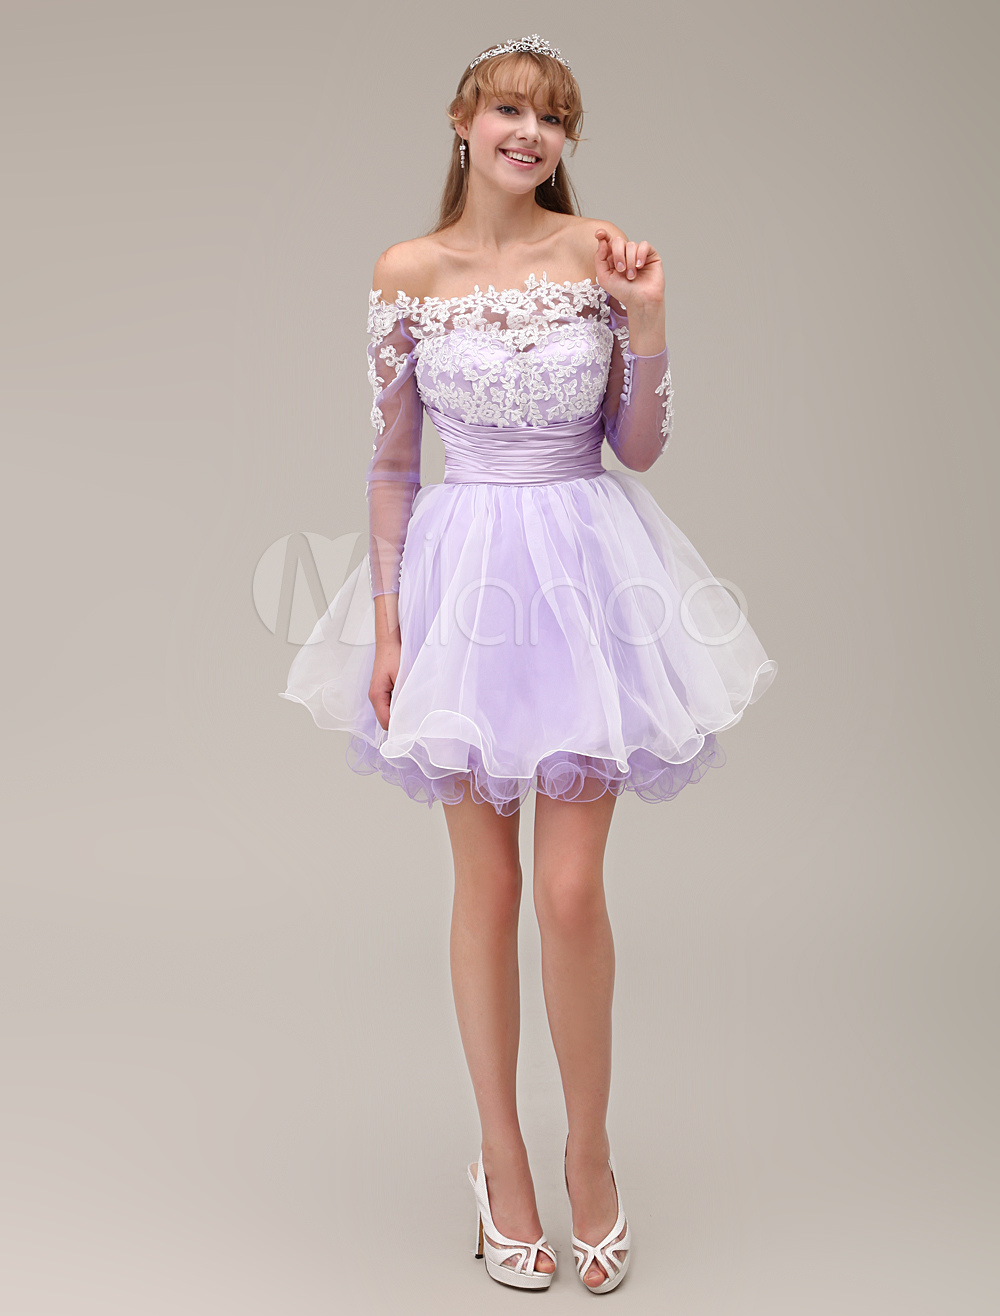 Off-The-Shoulder A-line Bateau Neck Two-Tone Tiered Short Homecoming Dress with Lace Applique Milanoo